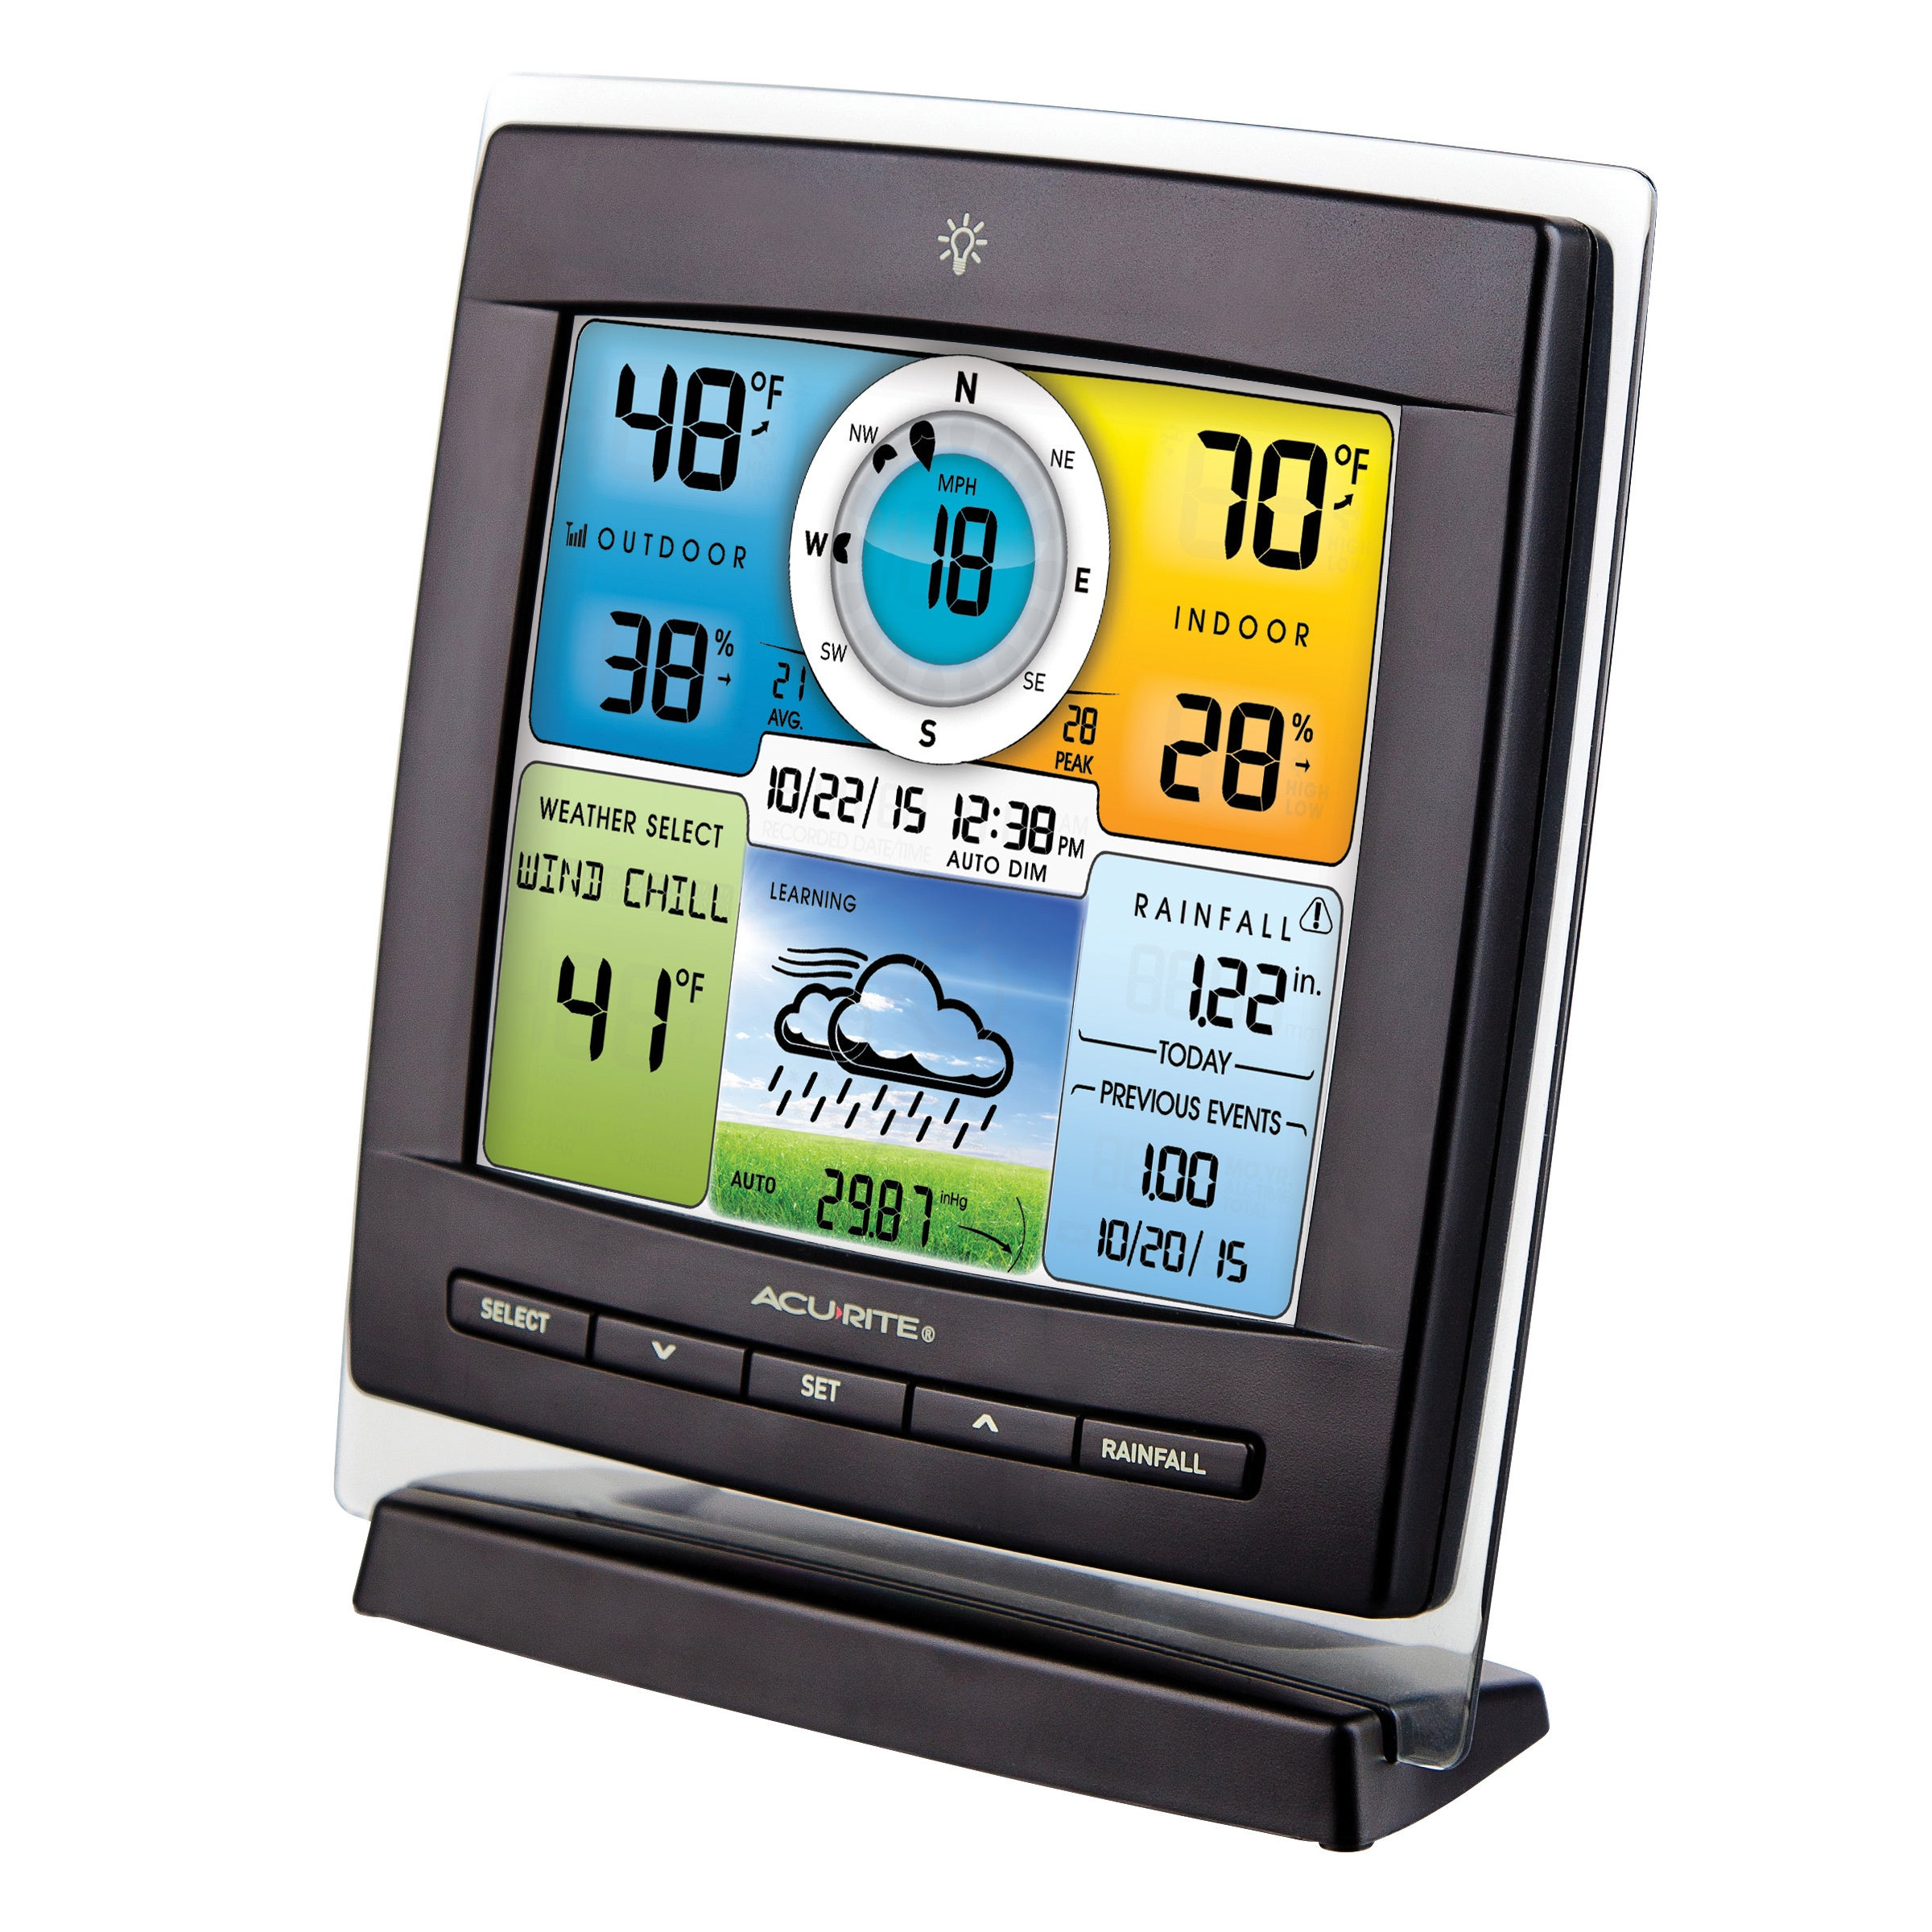 Chaney Instrument AcuRite 5-in-1 Color Weather Station